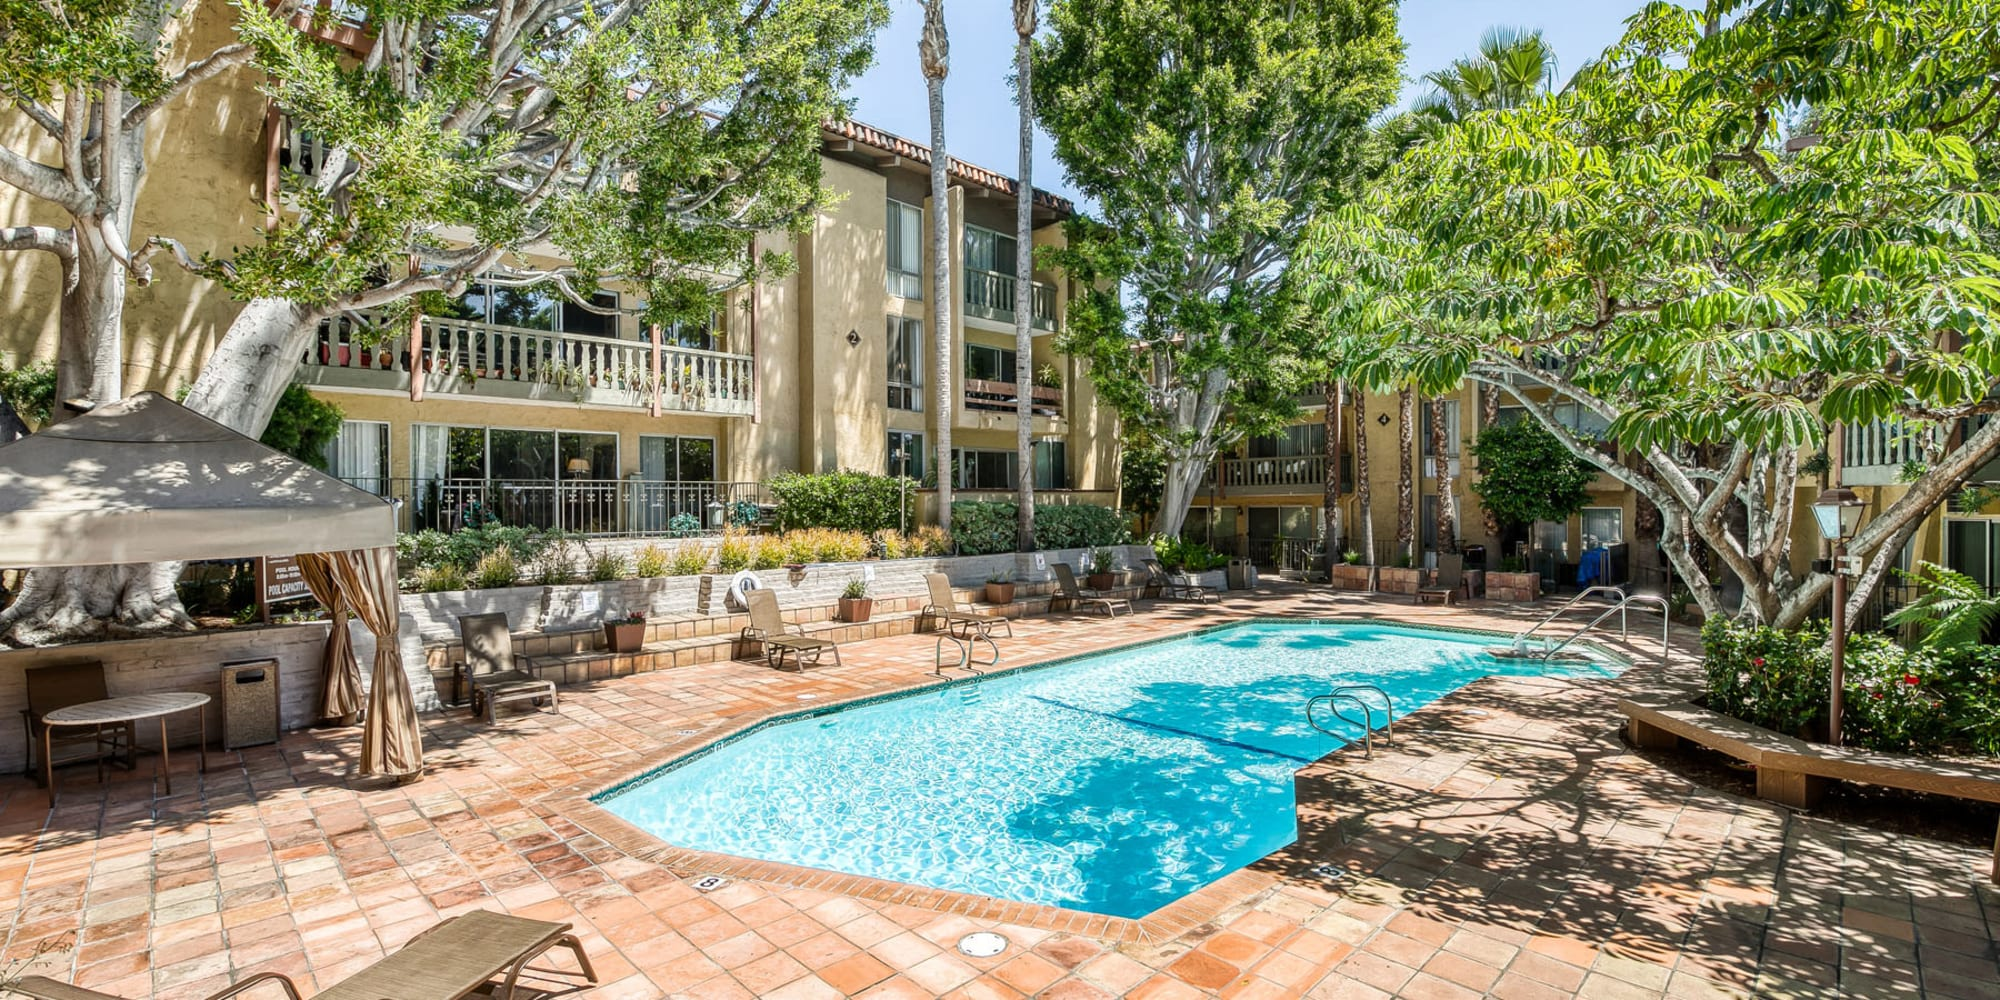 Beautiful day at the resort-style swimming pool at Mediterranean Village in West Hollywood, California